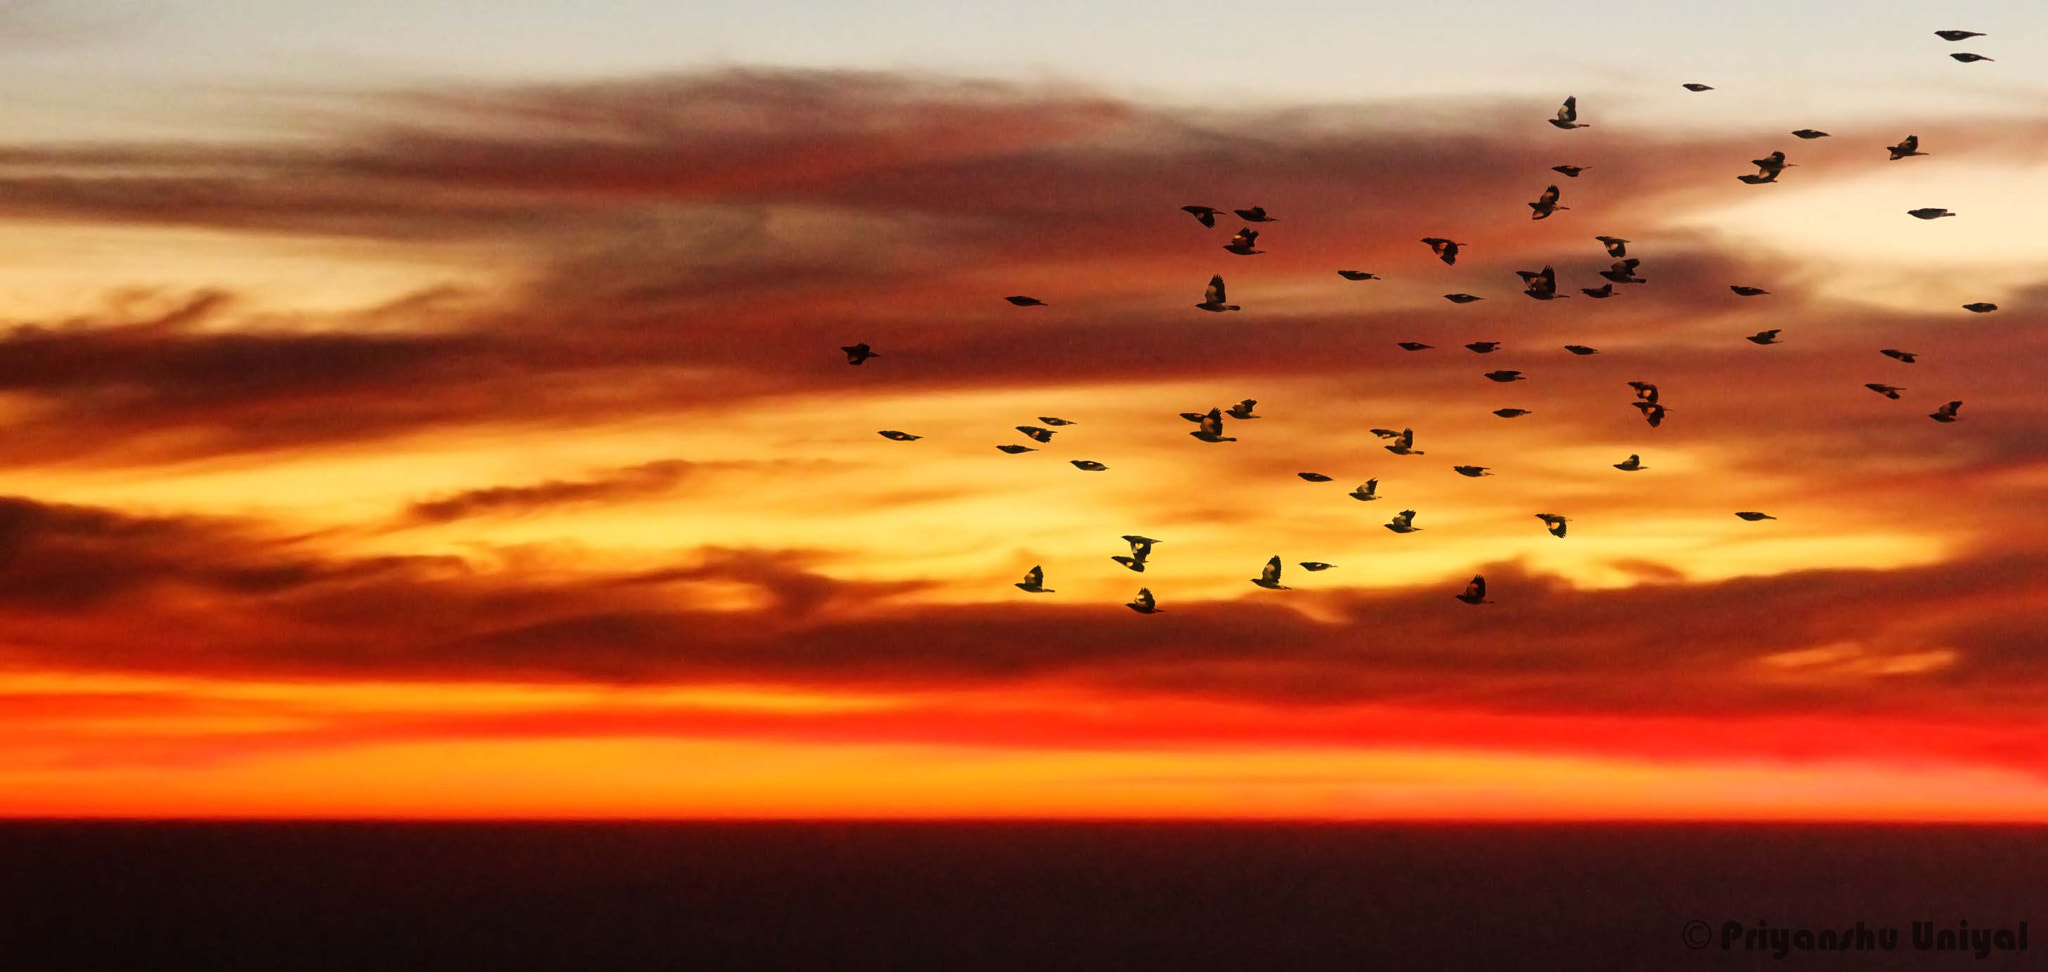 Photograph Flying Home by Priyanshu Uniyal on 500px